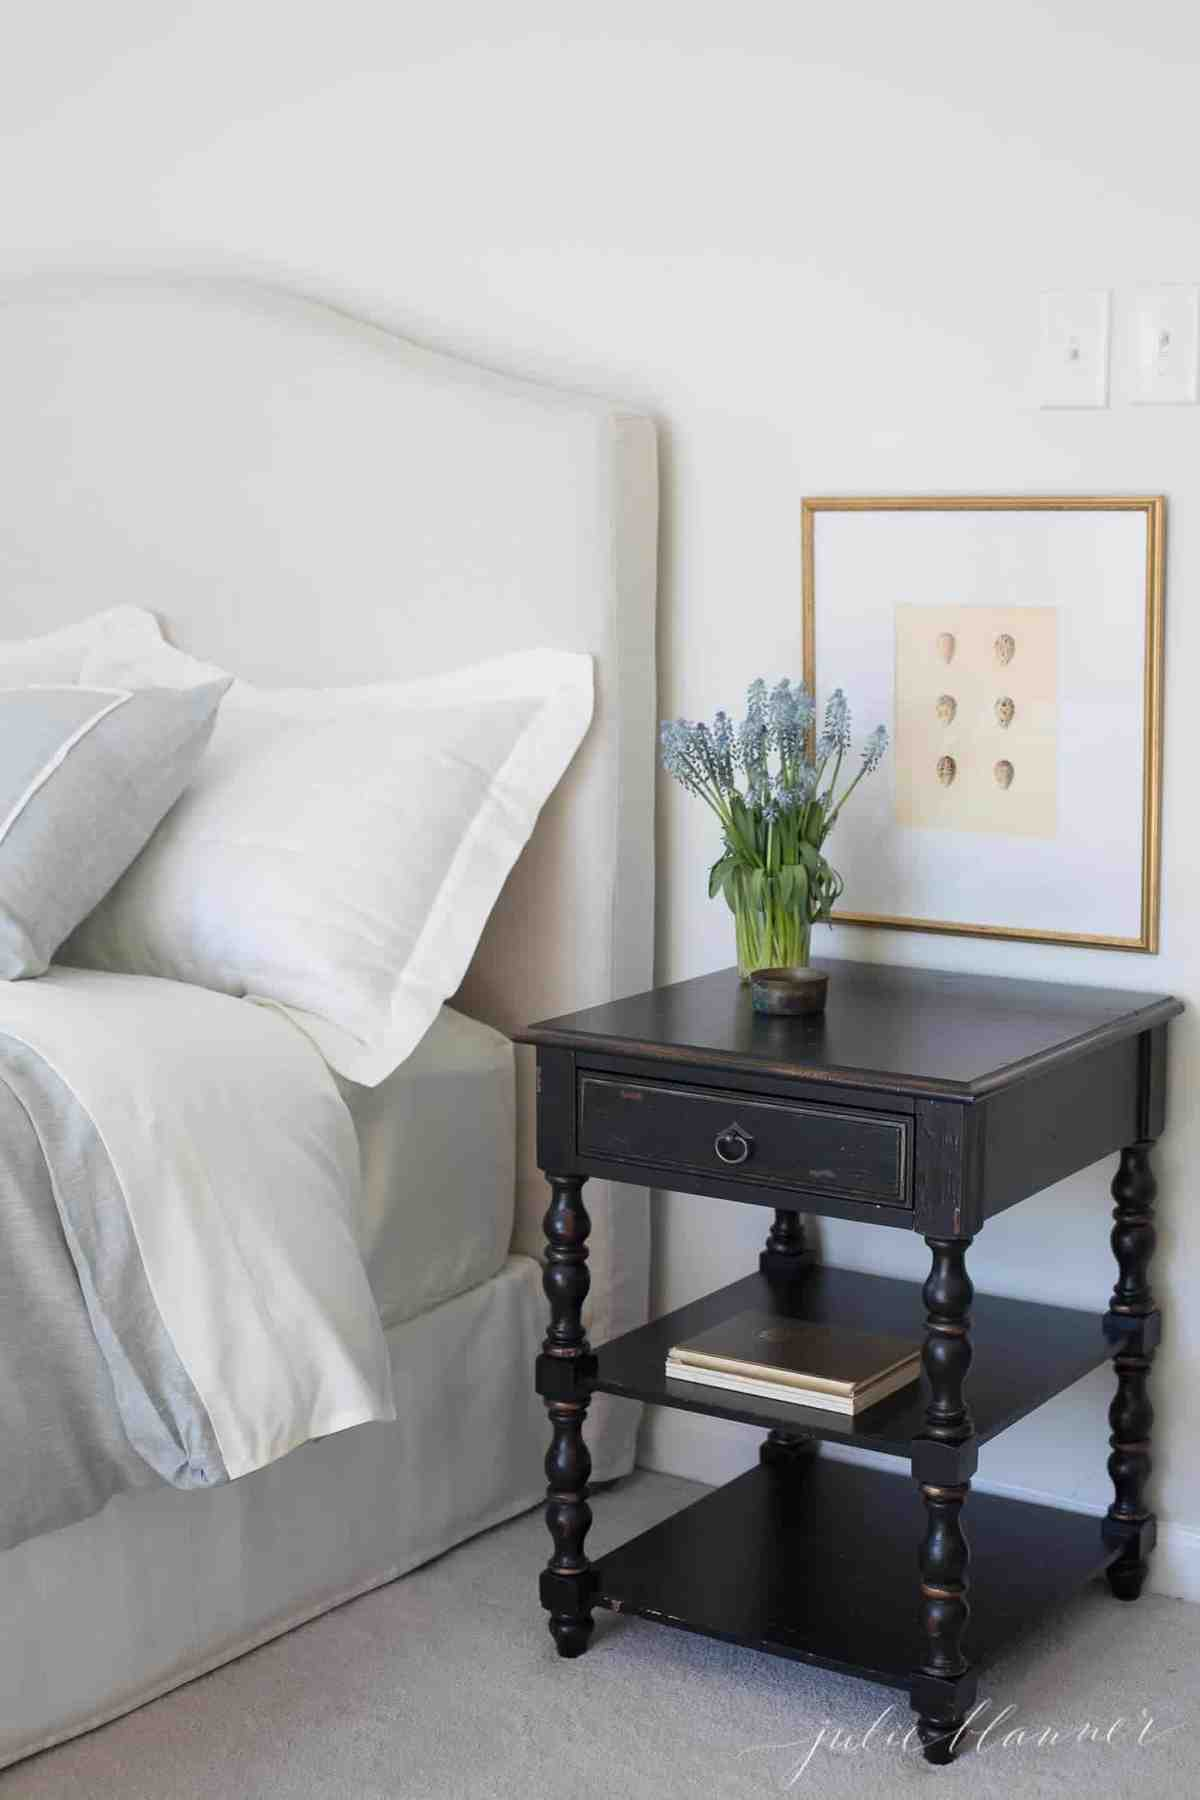 A white bedroom with spring decor additions like a vase of flowers and a fresh spring art print.